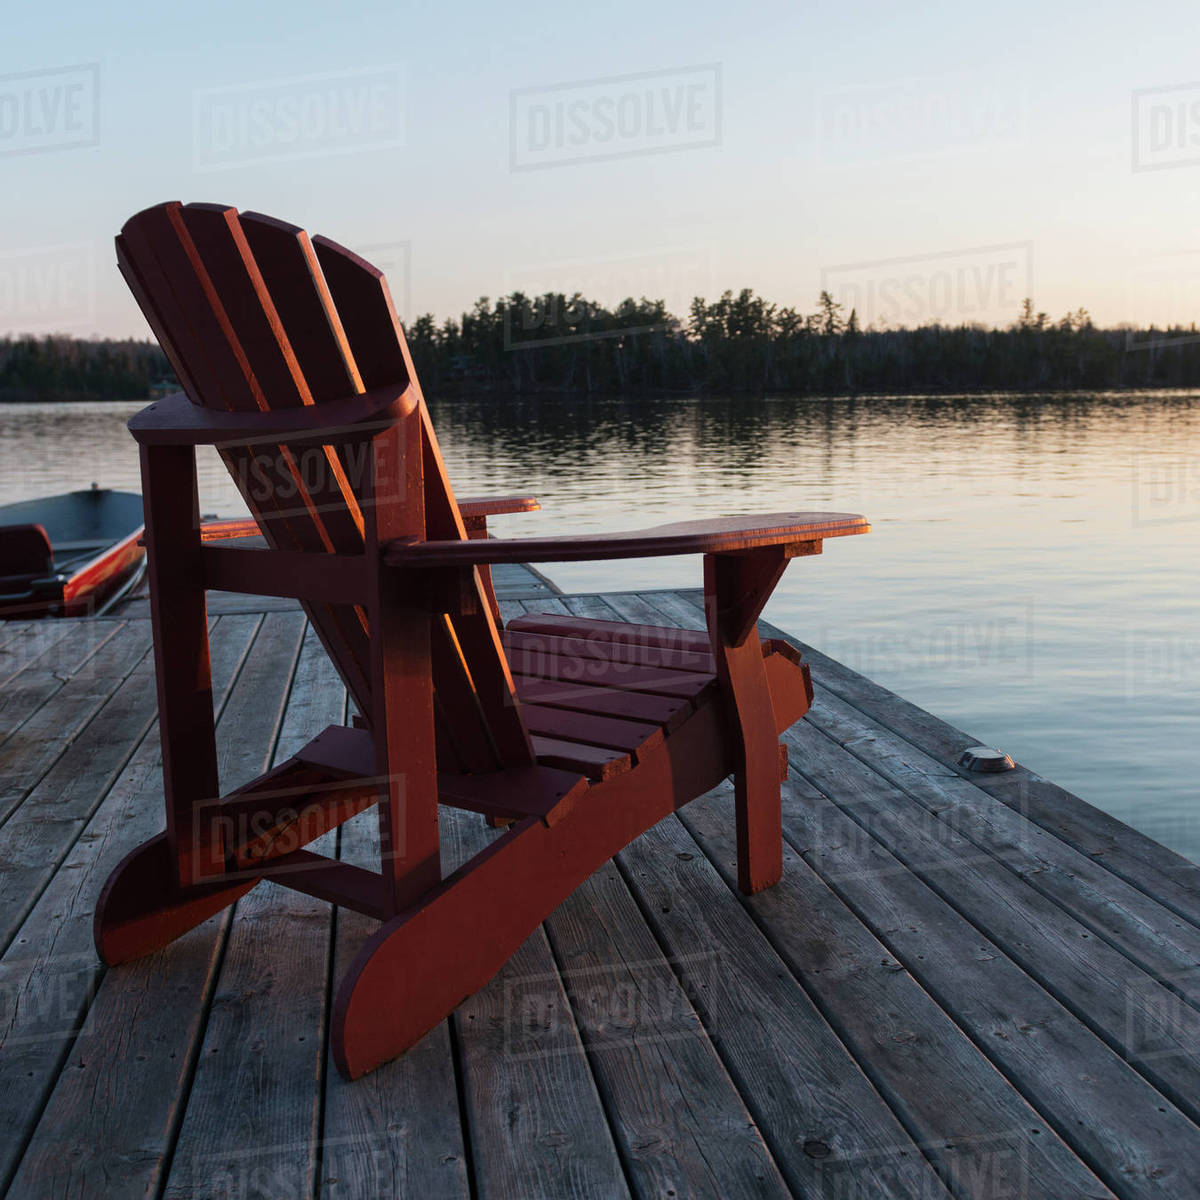 Red Adirondack Chairs A Red Adirondack Chair Sitting On A Wooden Dock On A Lake At Sunset Lake Of The Woods Ontario Canada Stock Photo